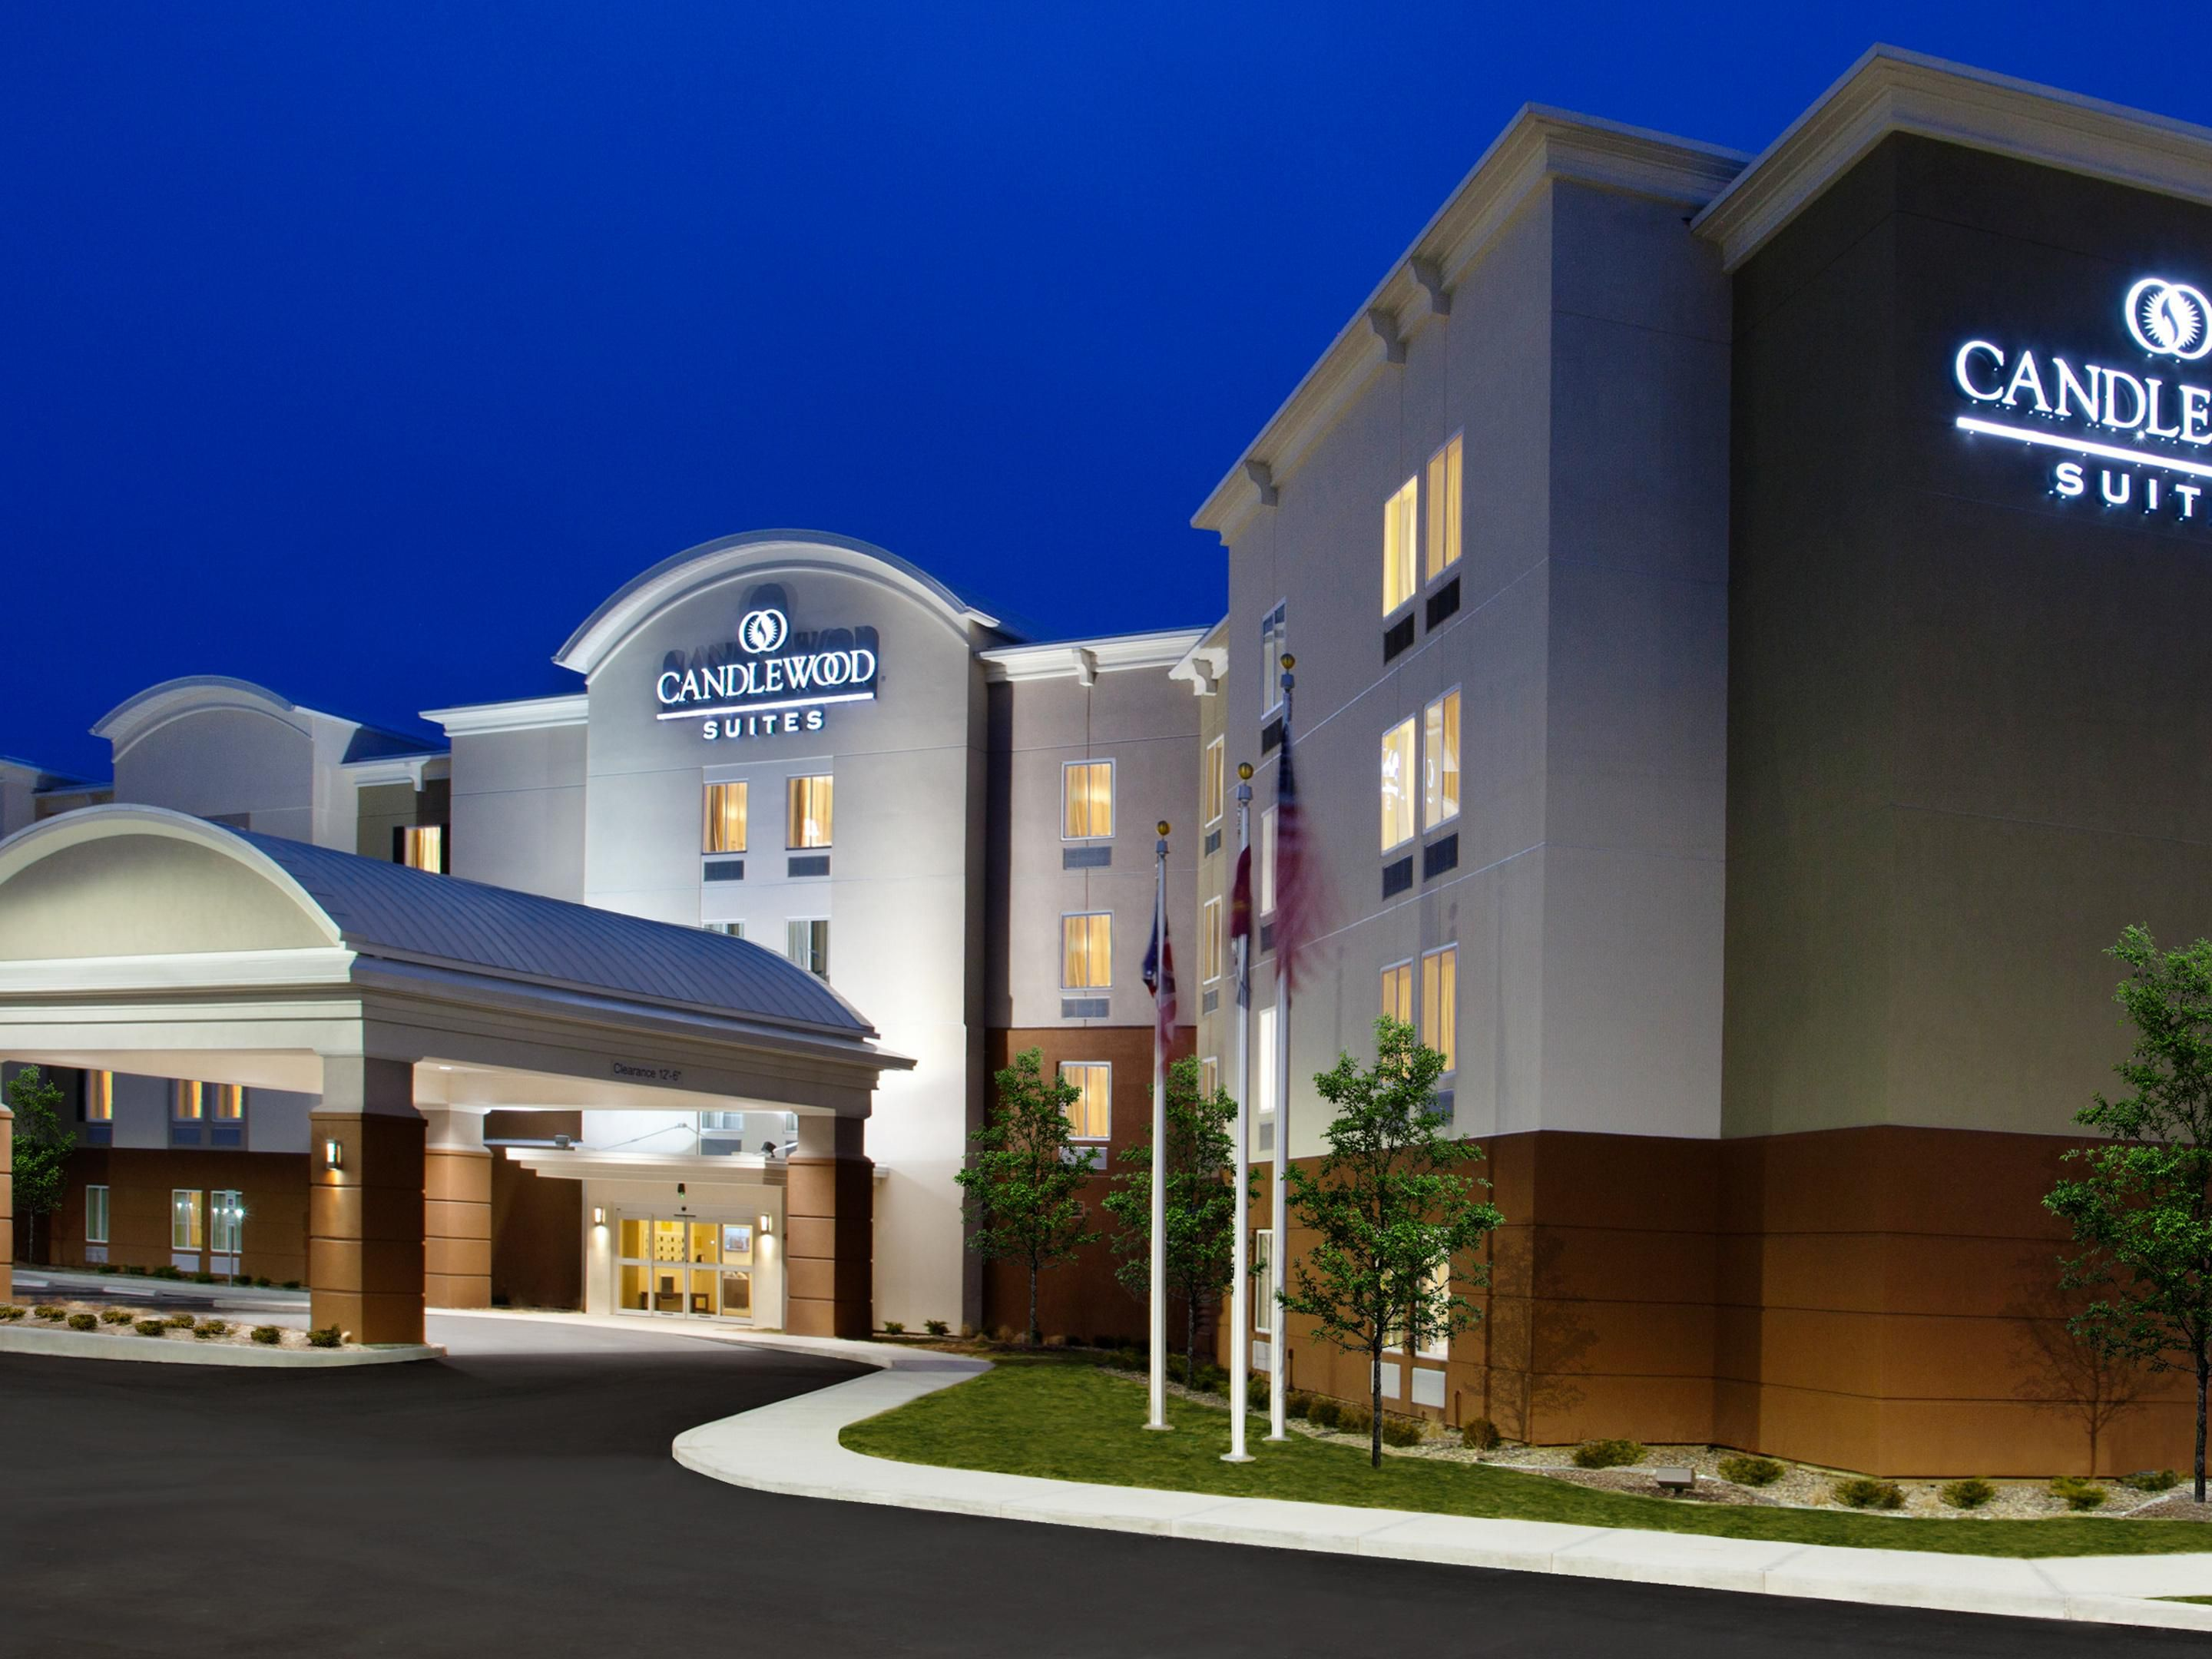 Check availability of business name ohio - Candlewood Suites Carrollton